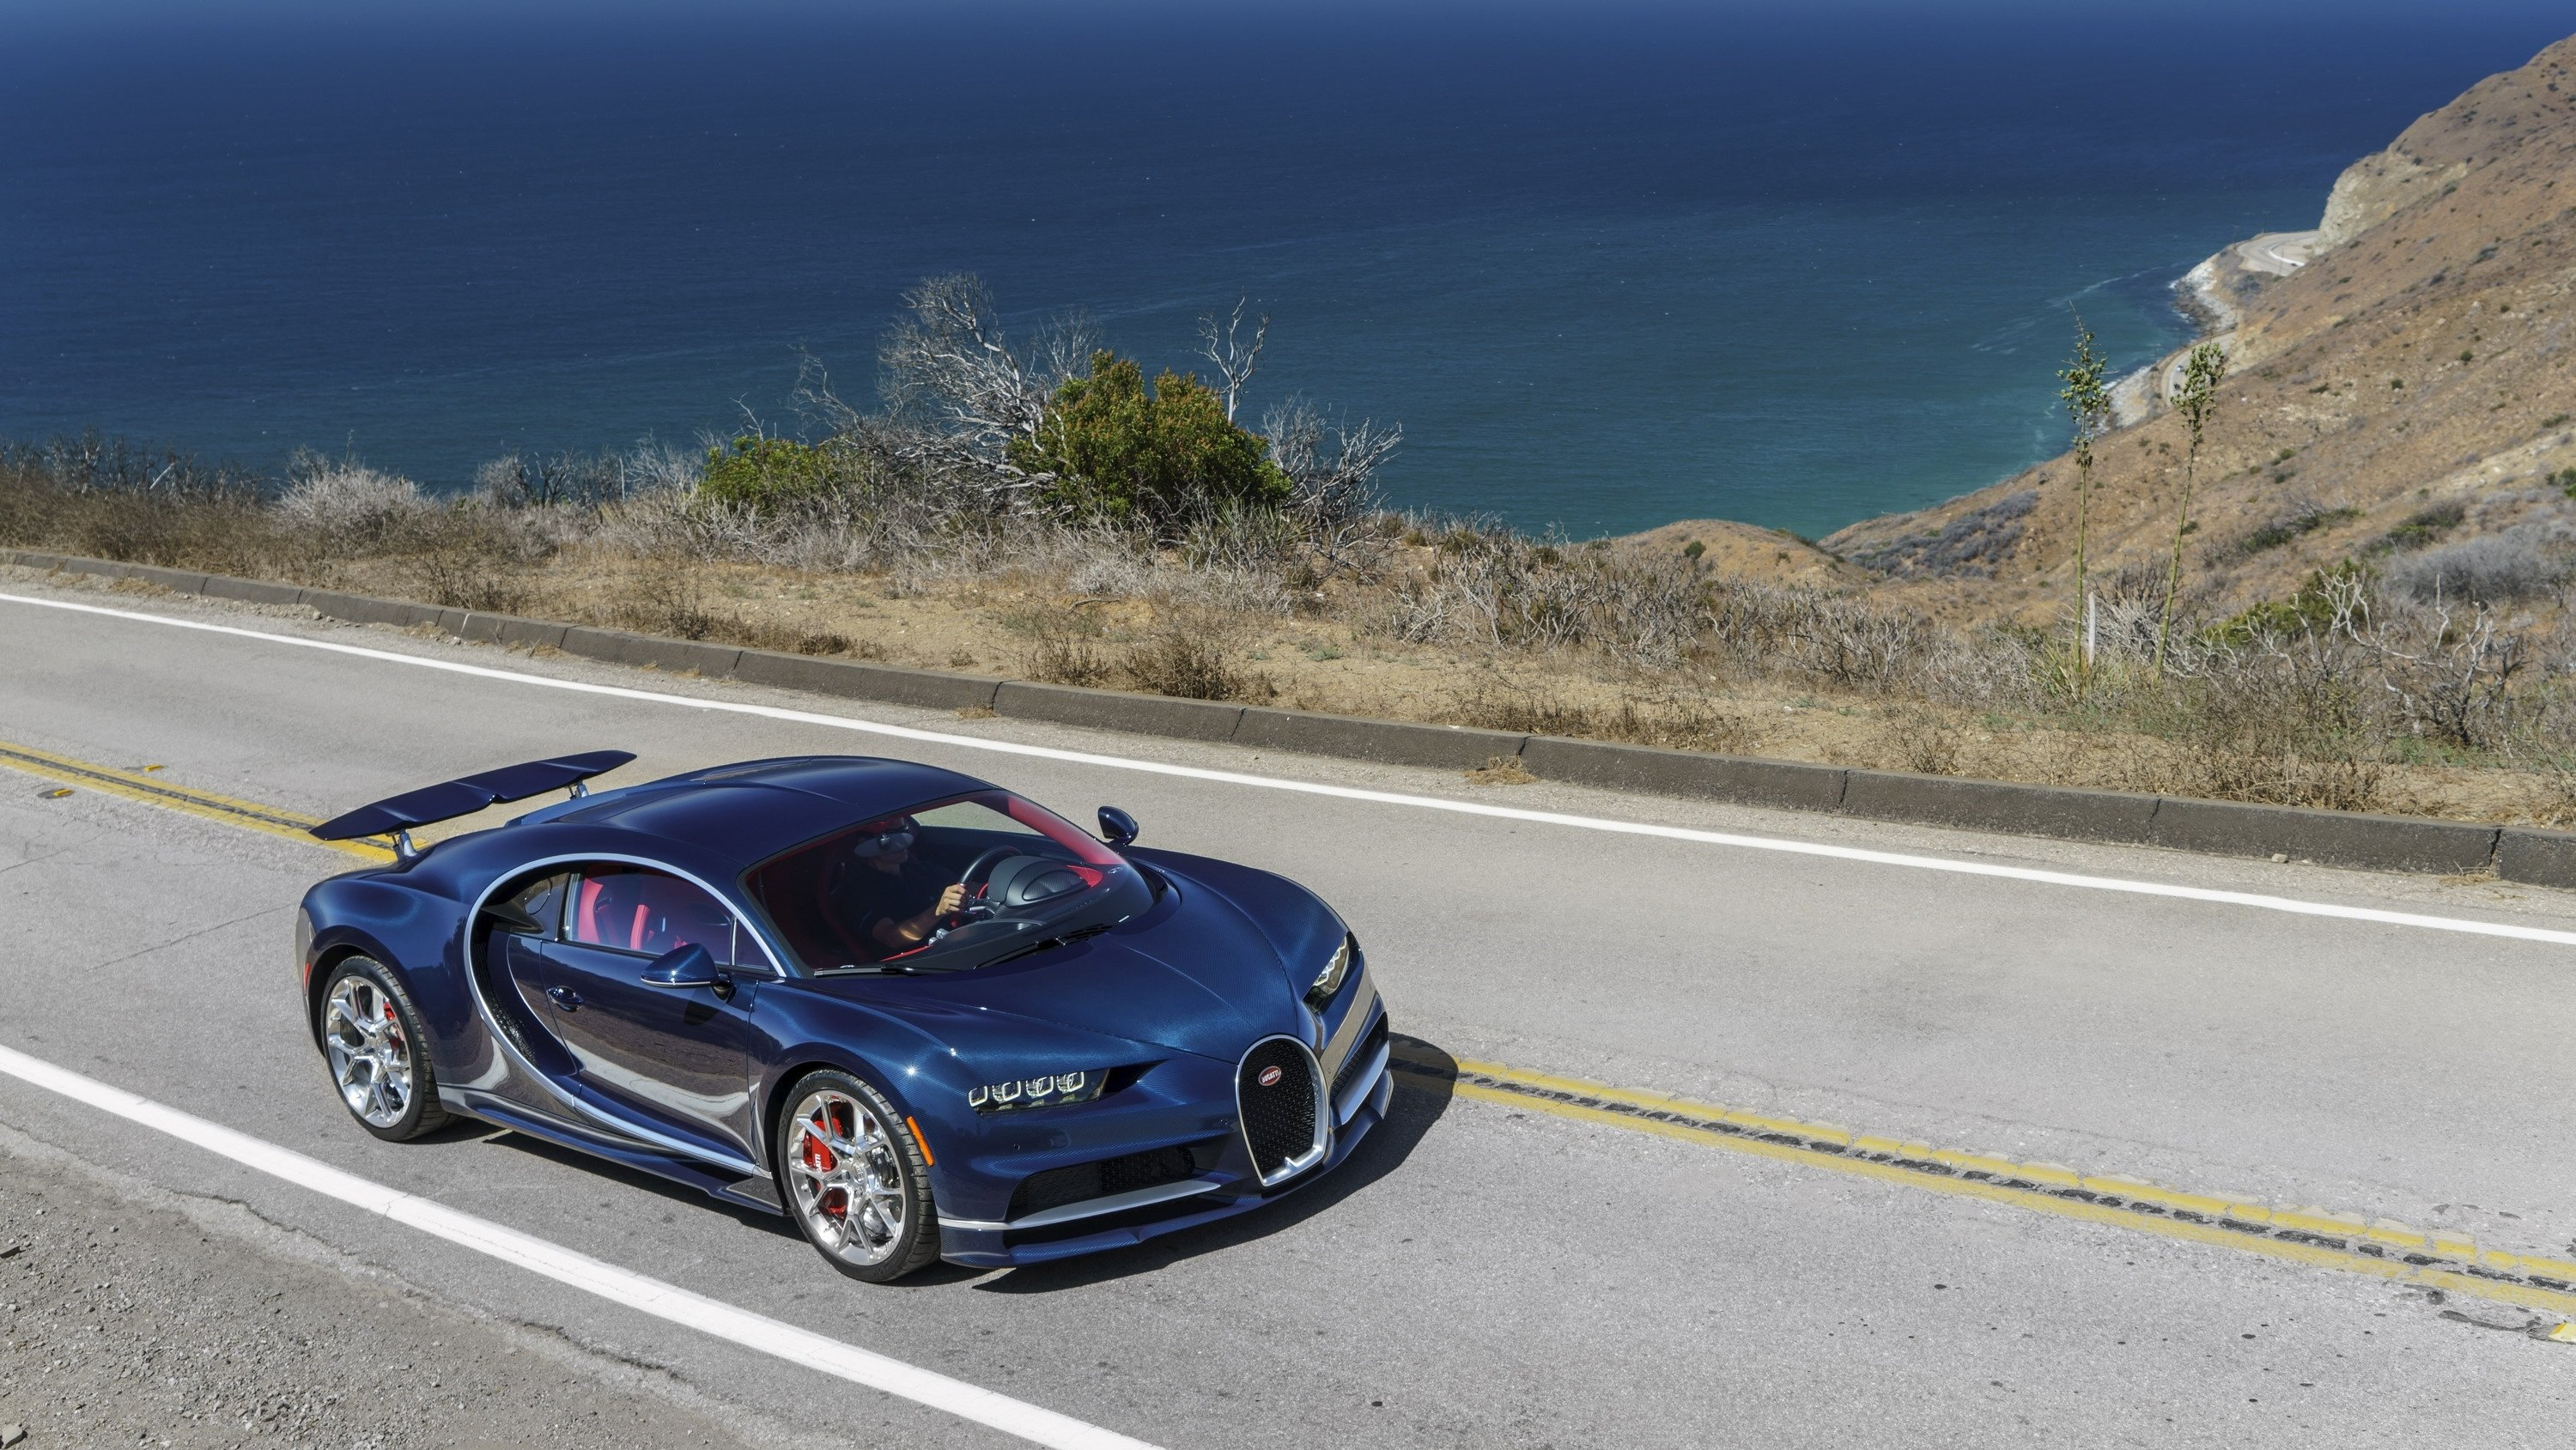 The World Has Been Waiting Two Years For The Bugatti Chiron To Post A Top Speed Run Weve Been Teased About It Before But Now It Looks All That Teasing